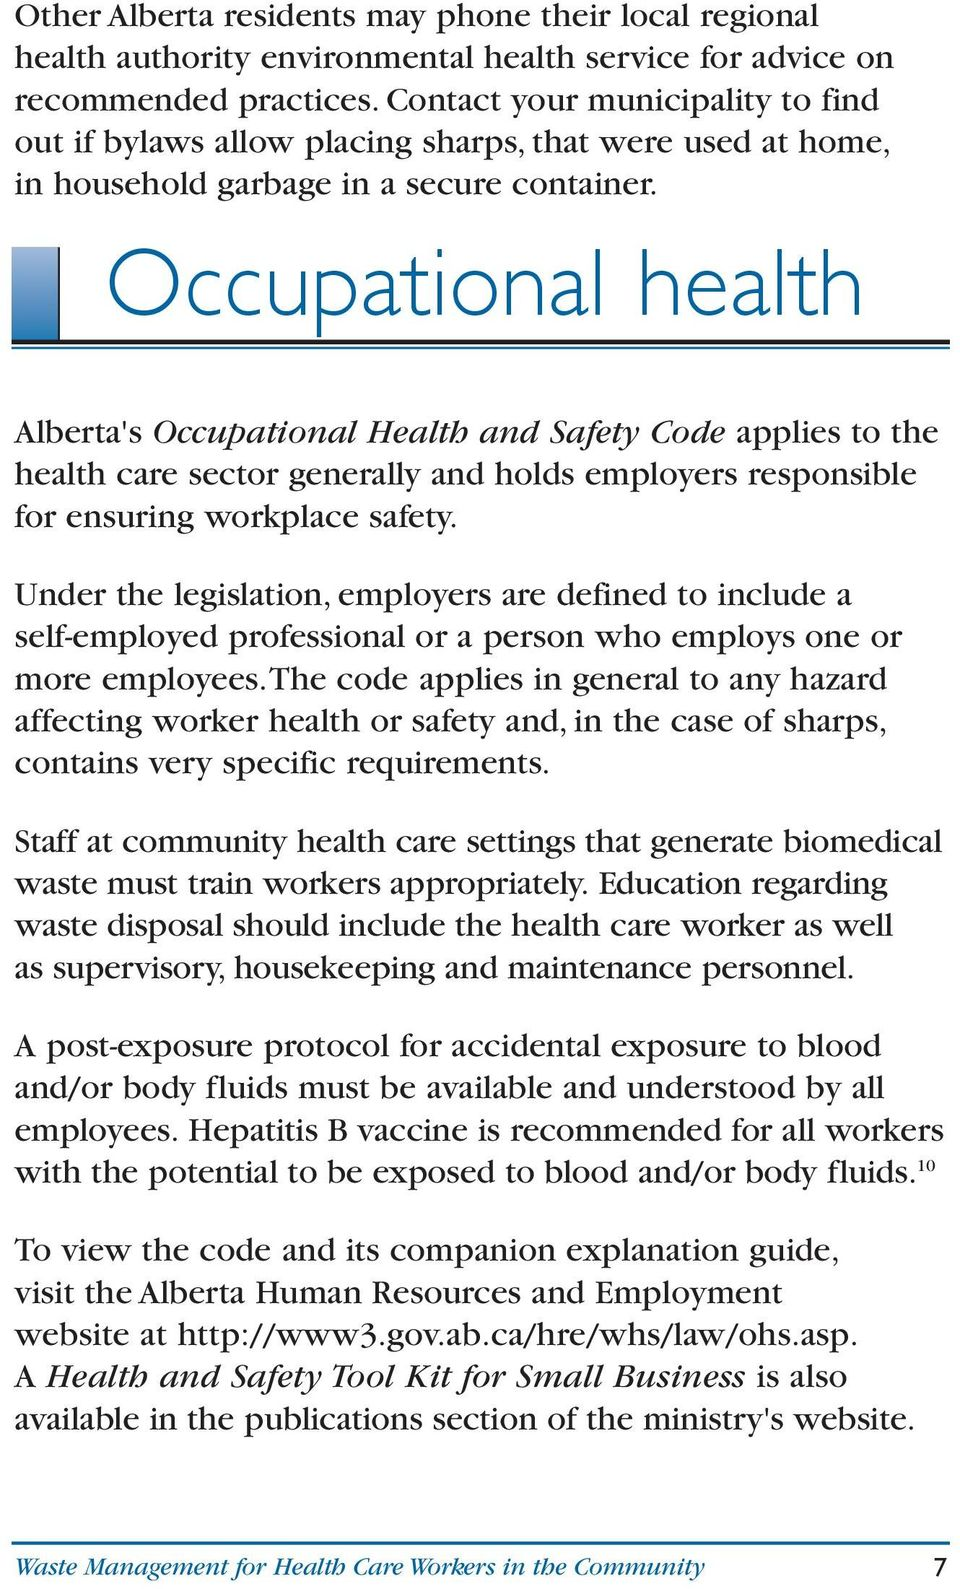 Occupational health Alberta's Occupational Health and Safety Code applies to the health care sector generally and holds employers responsible for ensuring workplace safety.